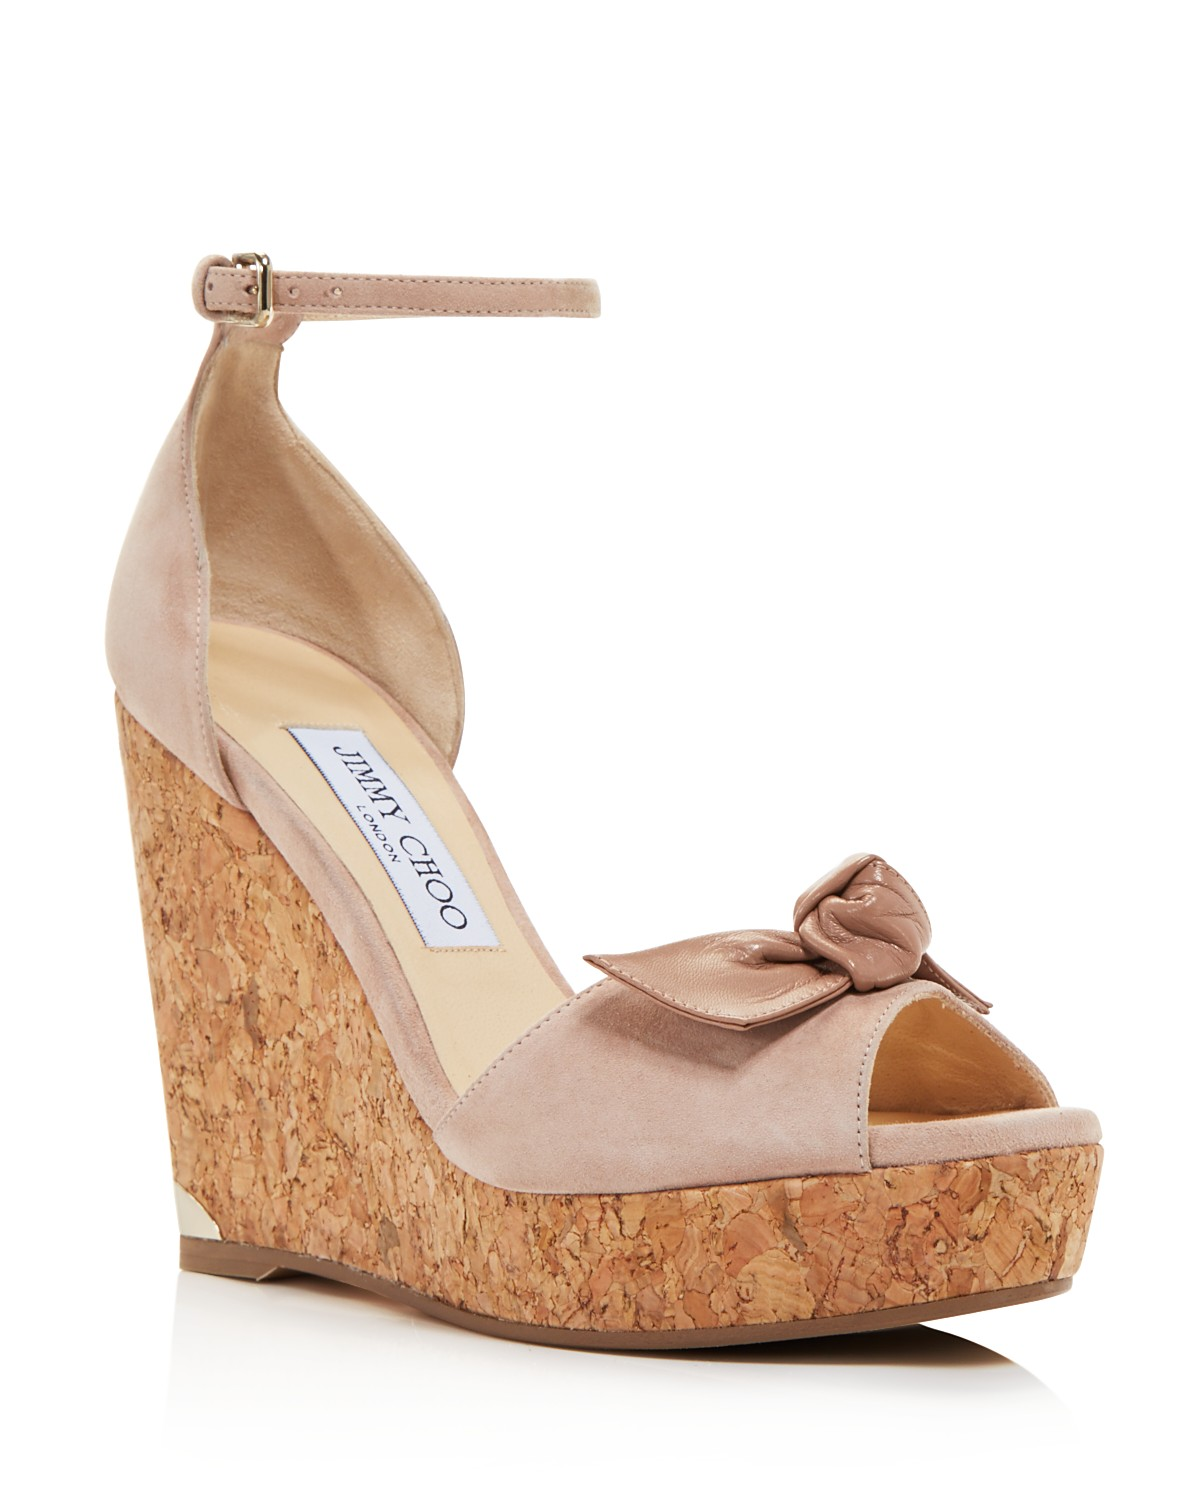 Jimmy choo Women's Dessie 120 Suede Platform Wedge Peep Toe Sandals Looking For Online 1Z0X4Usg